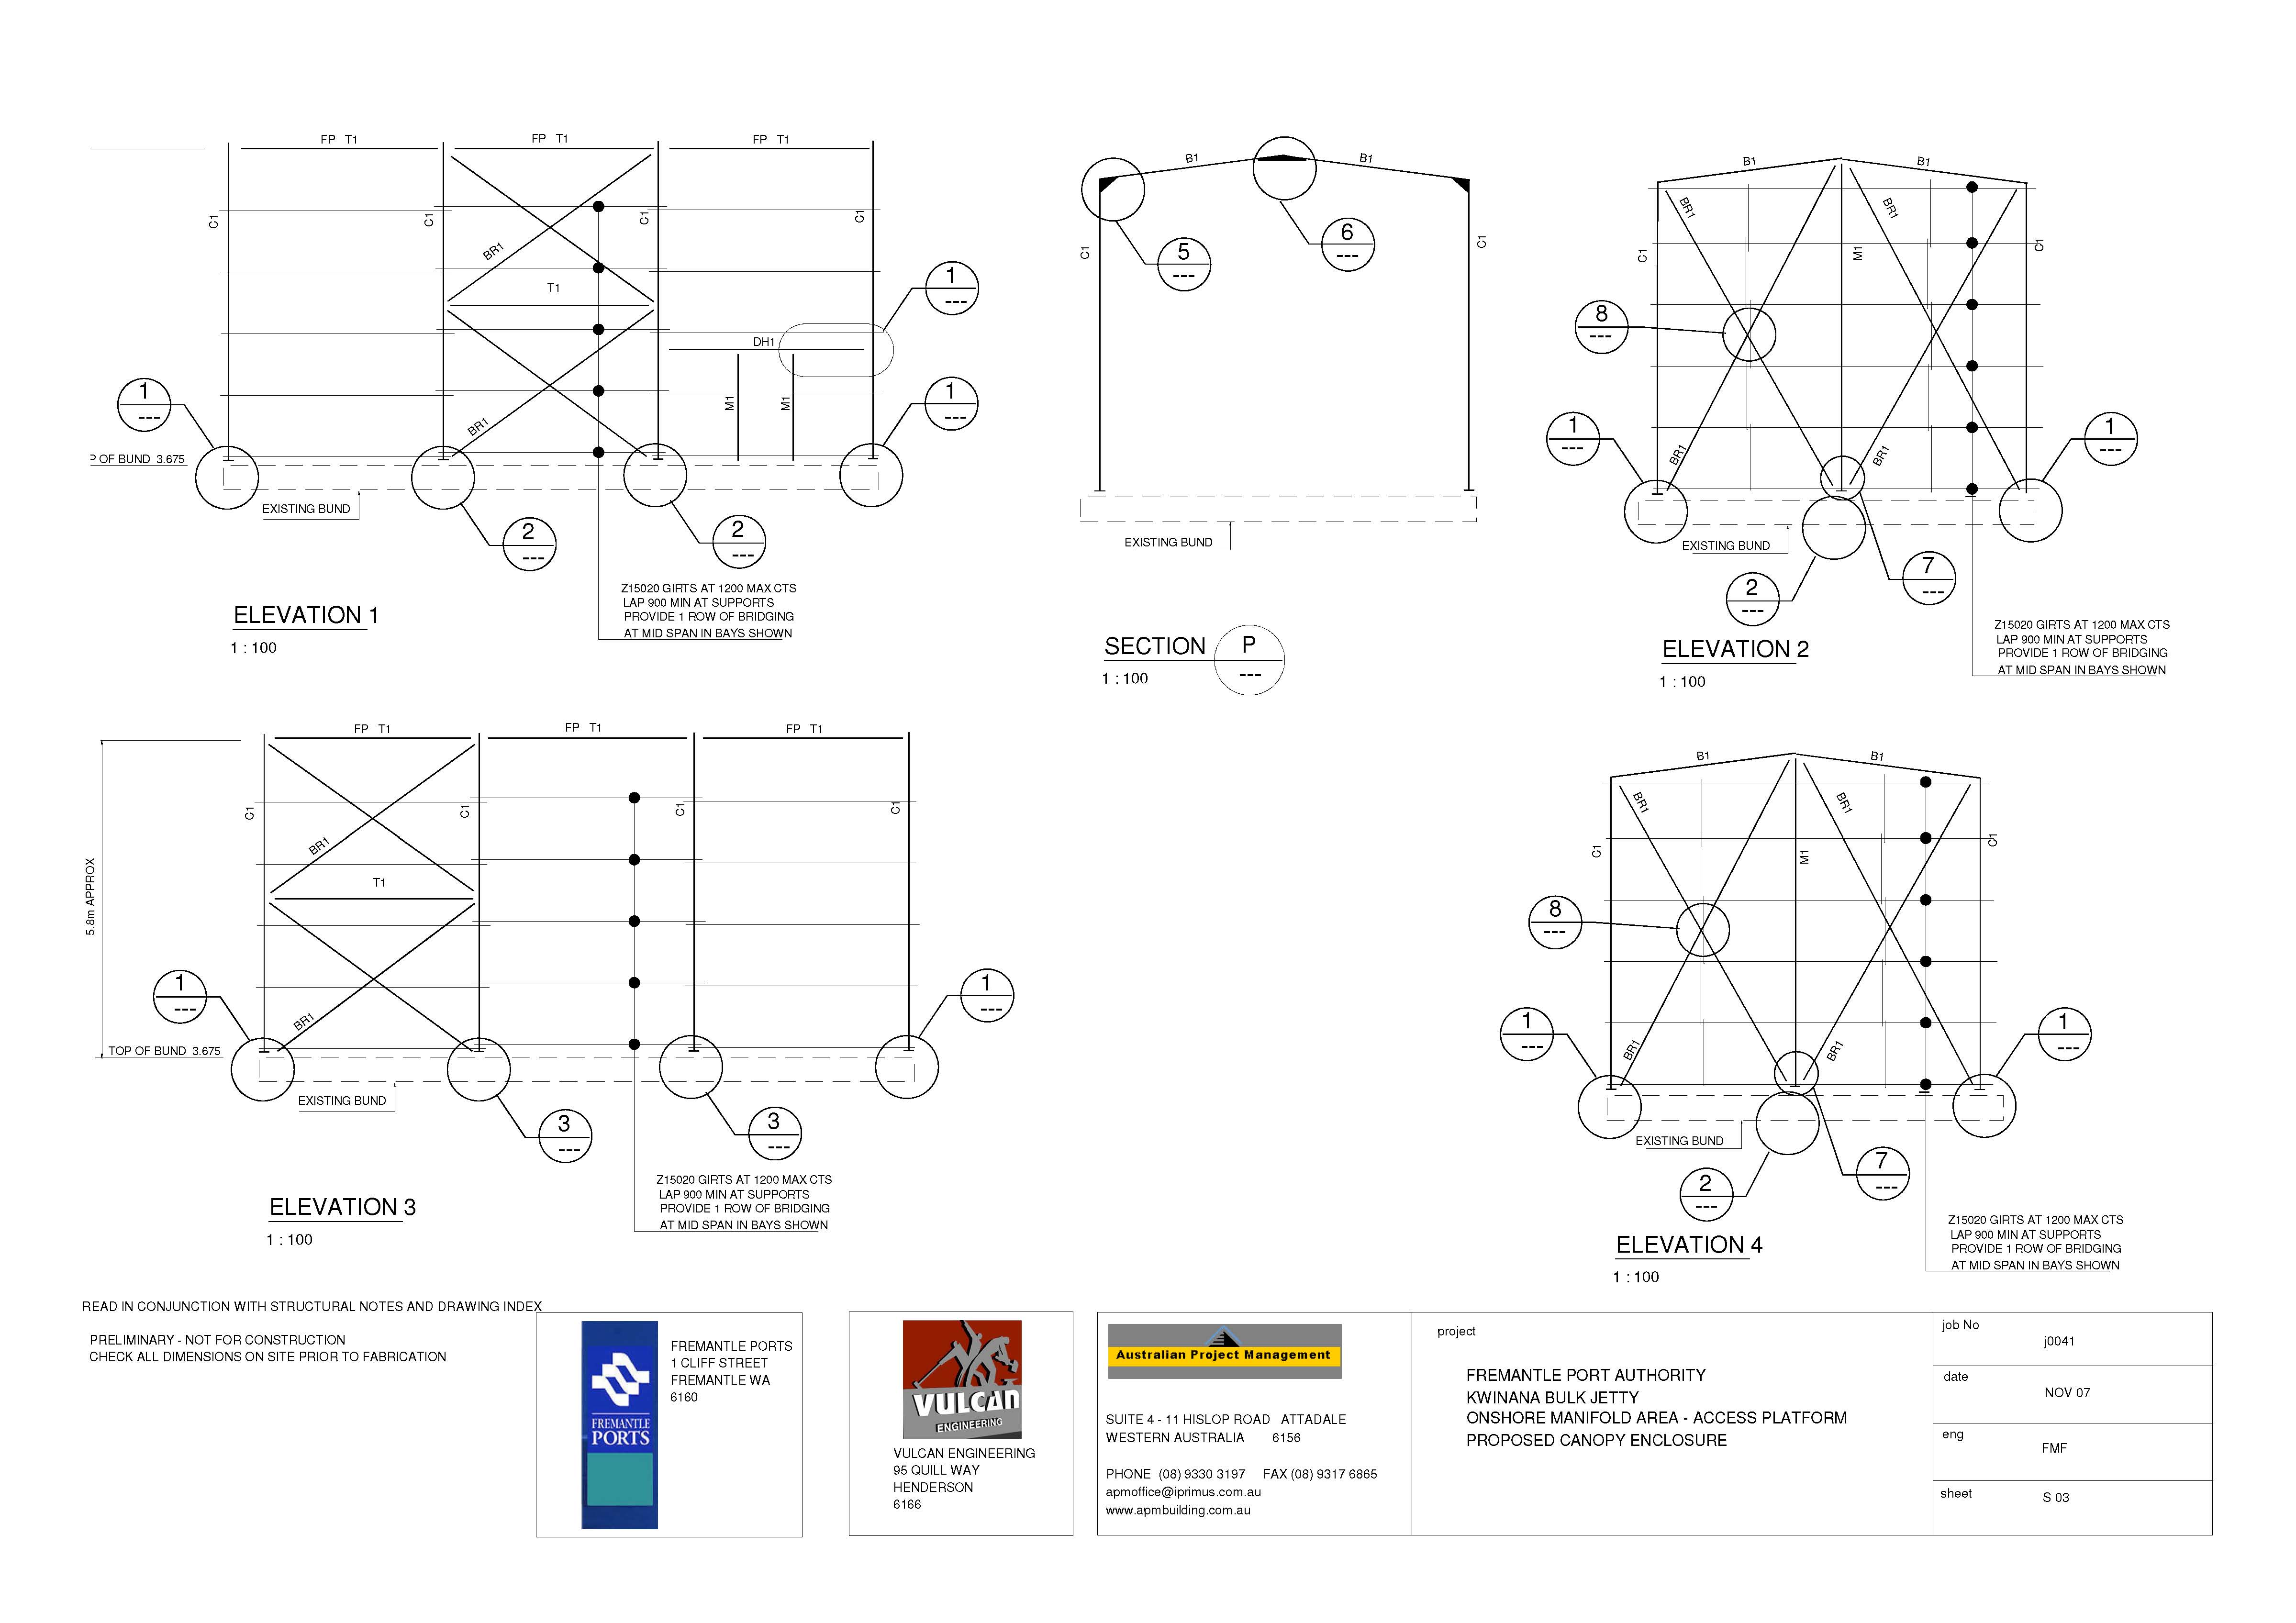 Structural and mechanical engineering and design home page for